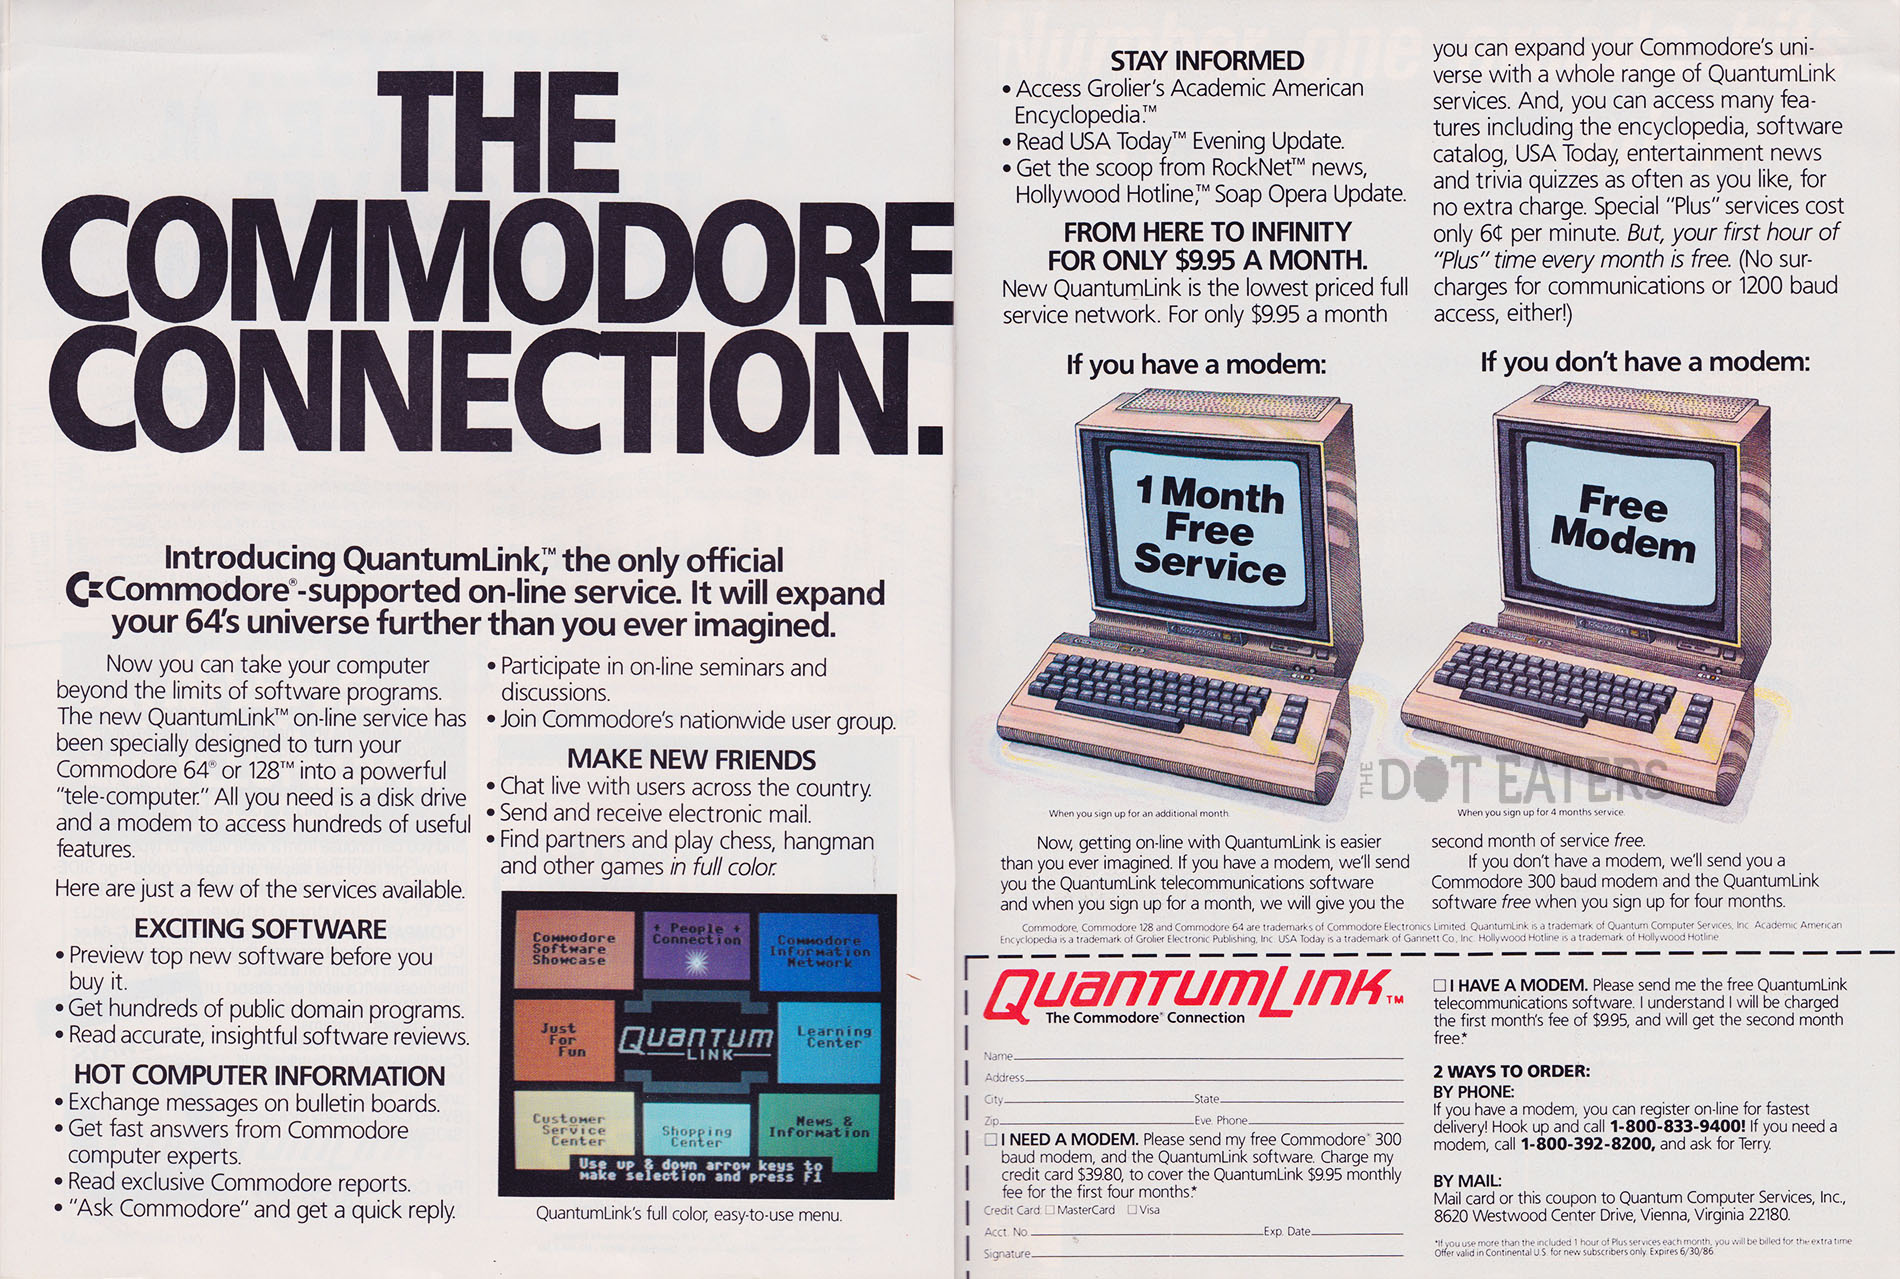 A magazine ad for QuantumLink, an online service for the Atari VCS/2600